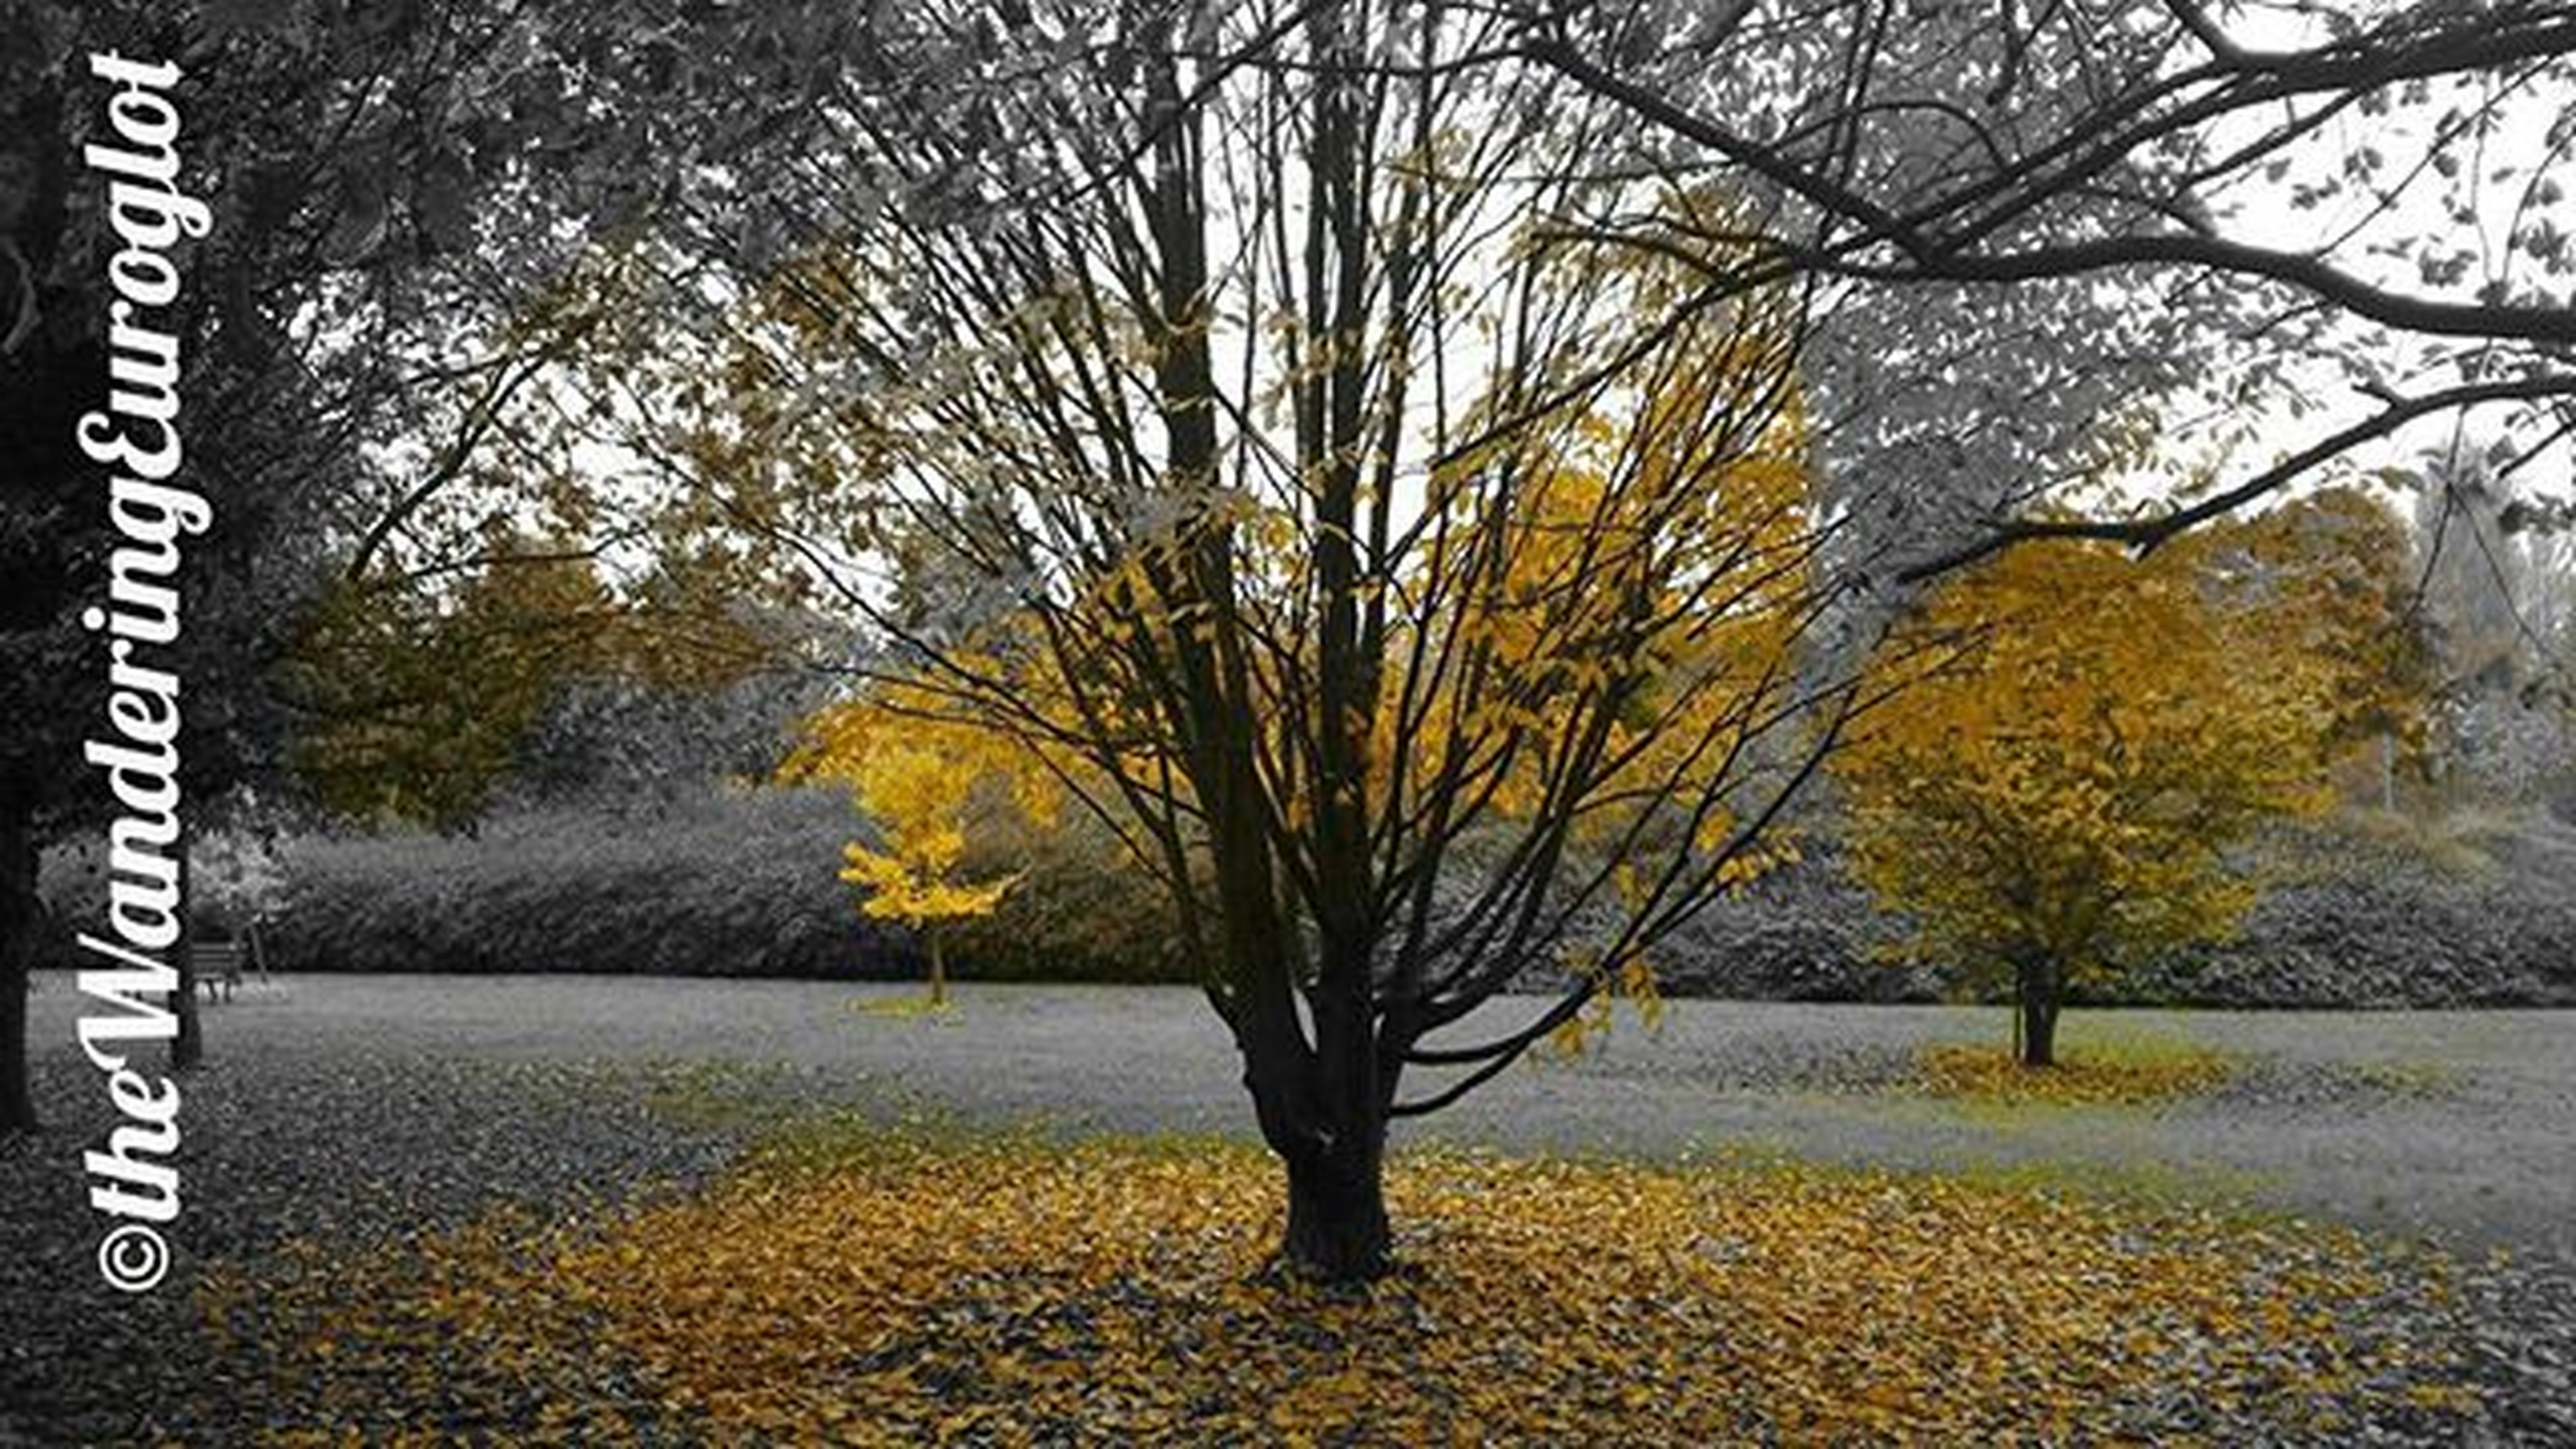 autumn, tree, season, change, water, branch, tranquility, nature, beauty in nature, tree trunk, leaf, tranquil scene, yellow, lake, bare tree, scenics, reflection, day, growth, outdoors